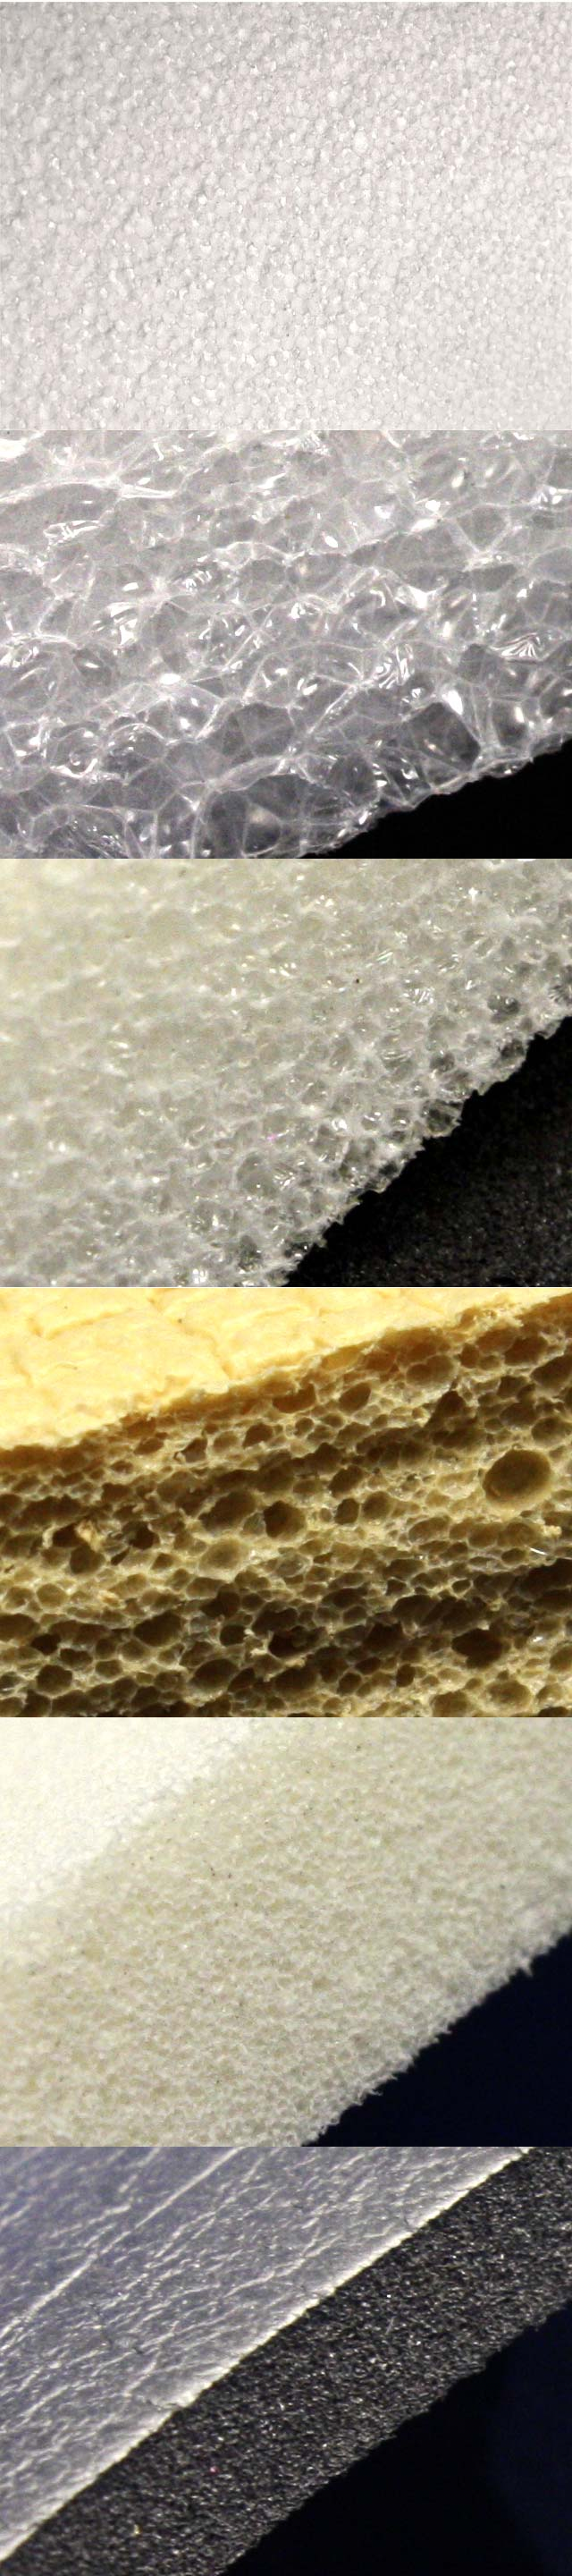 Taking a Closer Look at Foam: Part 2 – Closed-Cell Foam